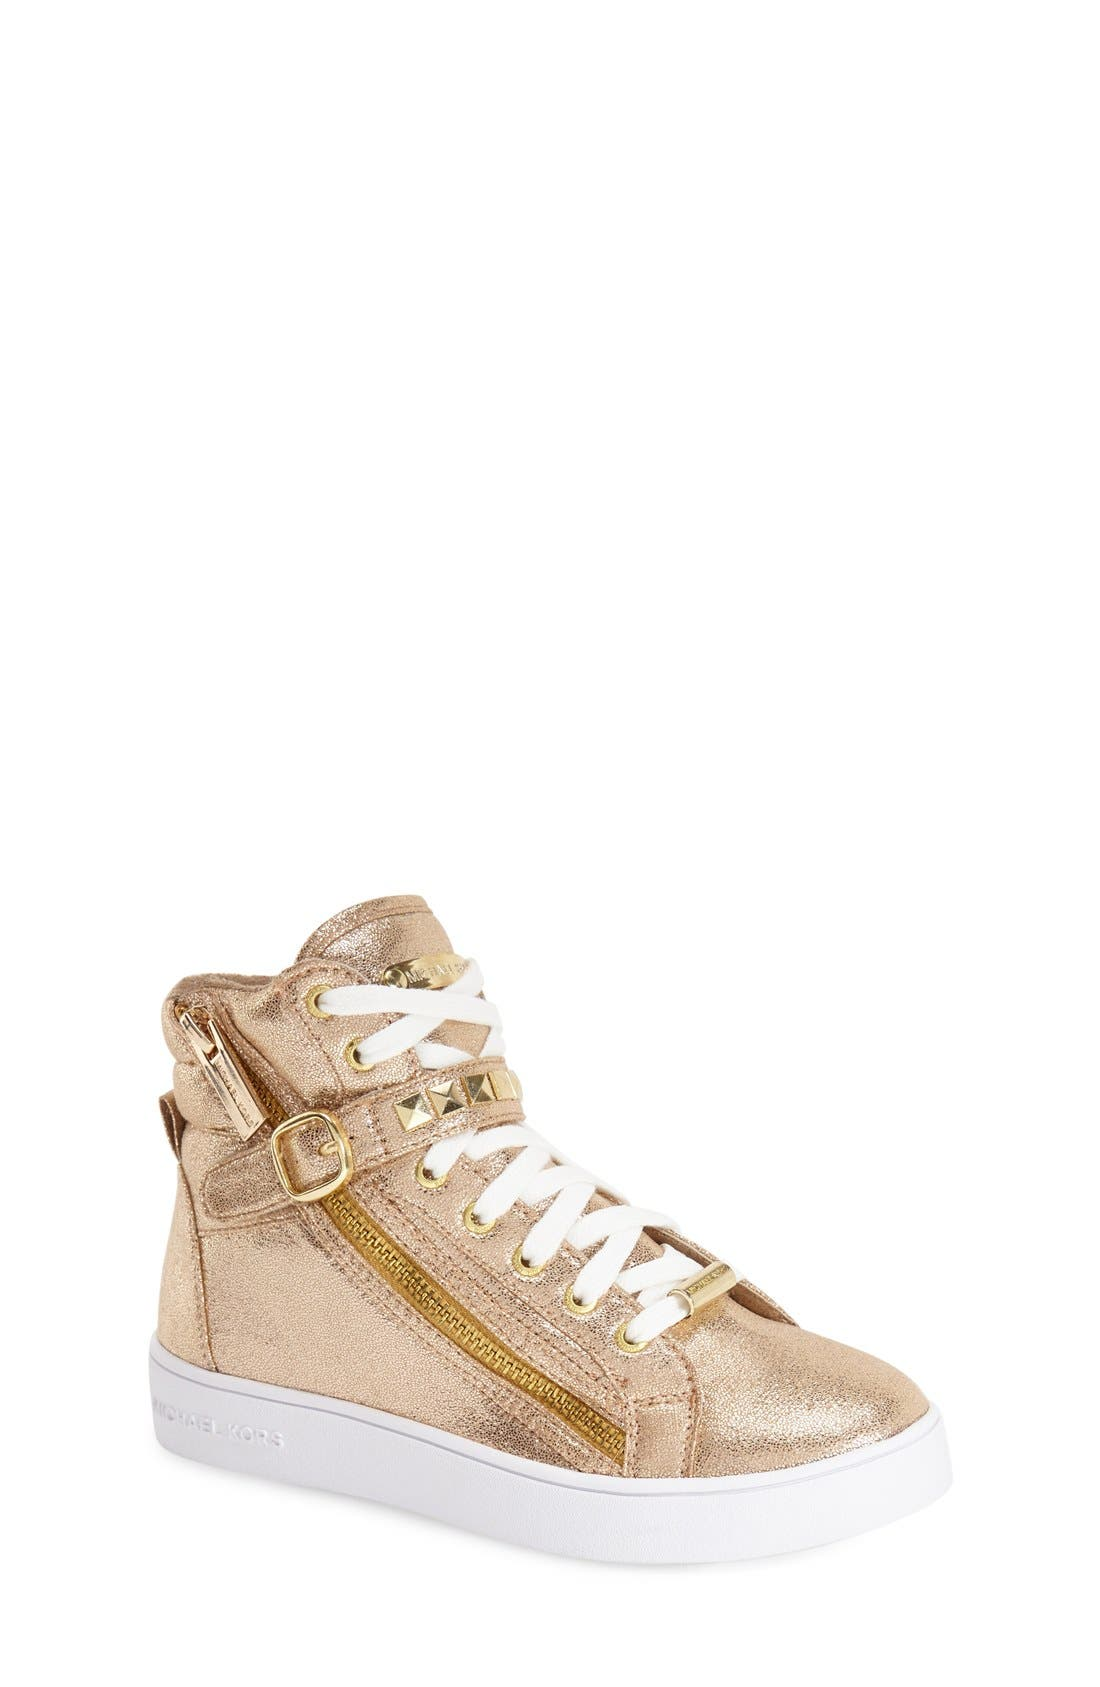 MICHAEL Michael Kors 'Ivy Rory' High Top Sneaker (Walker, Toddler, Little Kid & Big Kid)